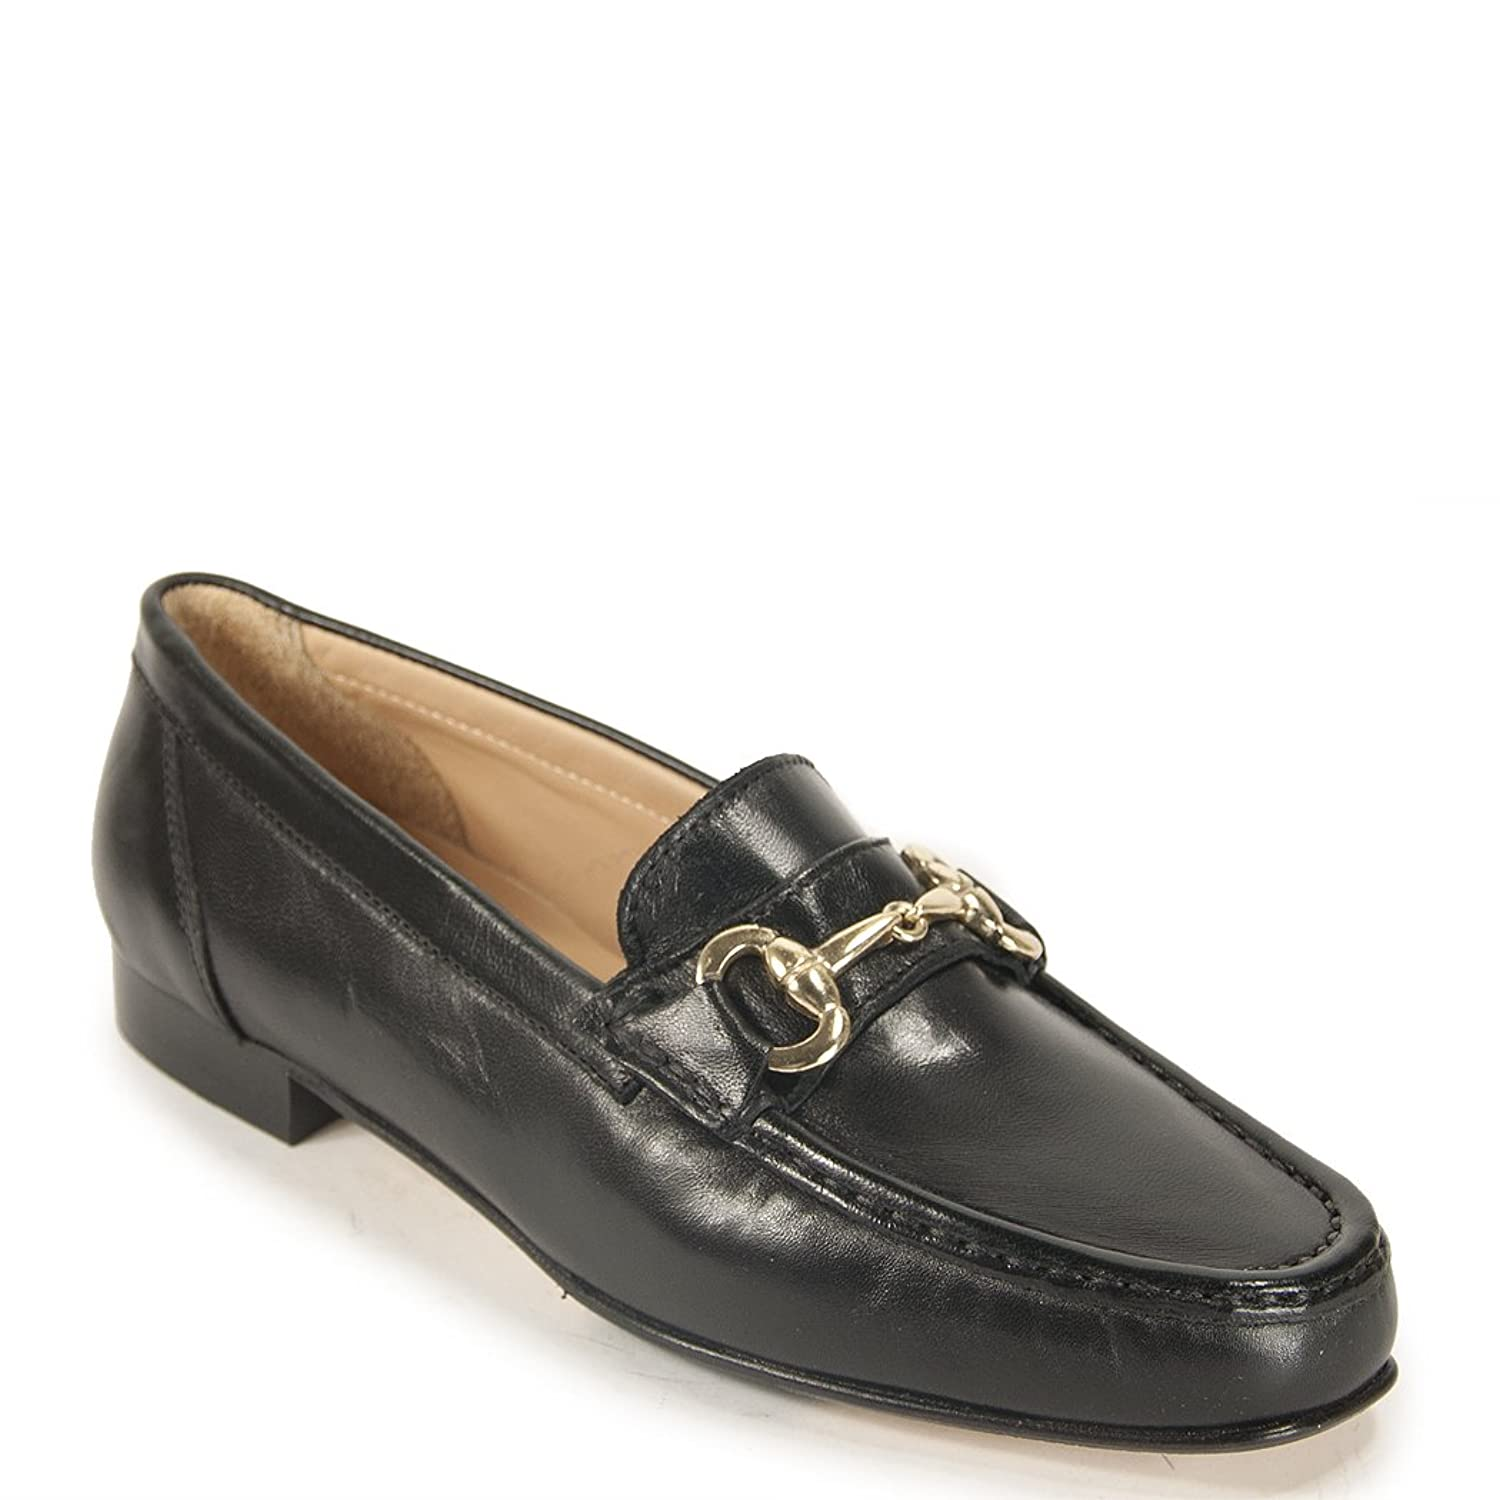 275 Central - 3223 - Women's Leather Loafer with Buckle